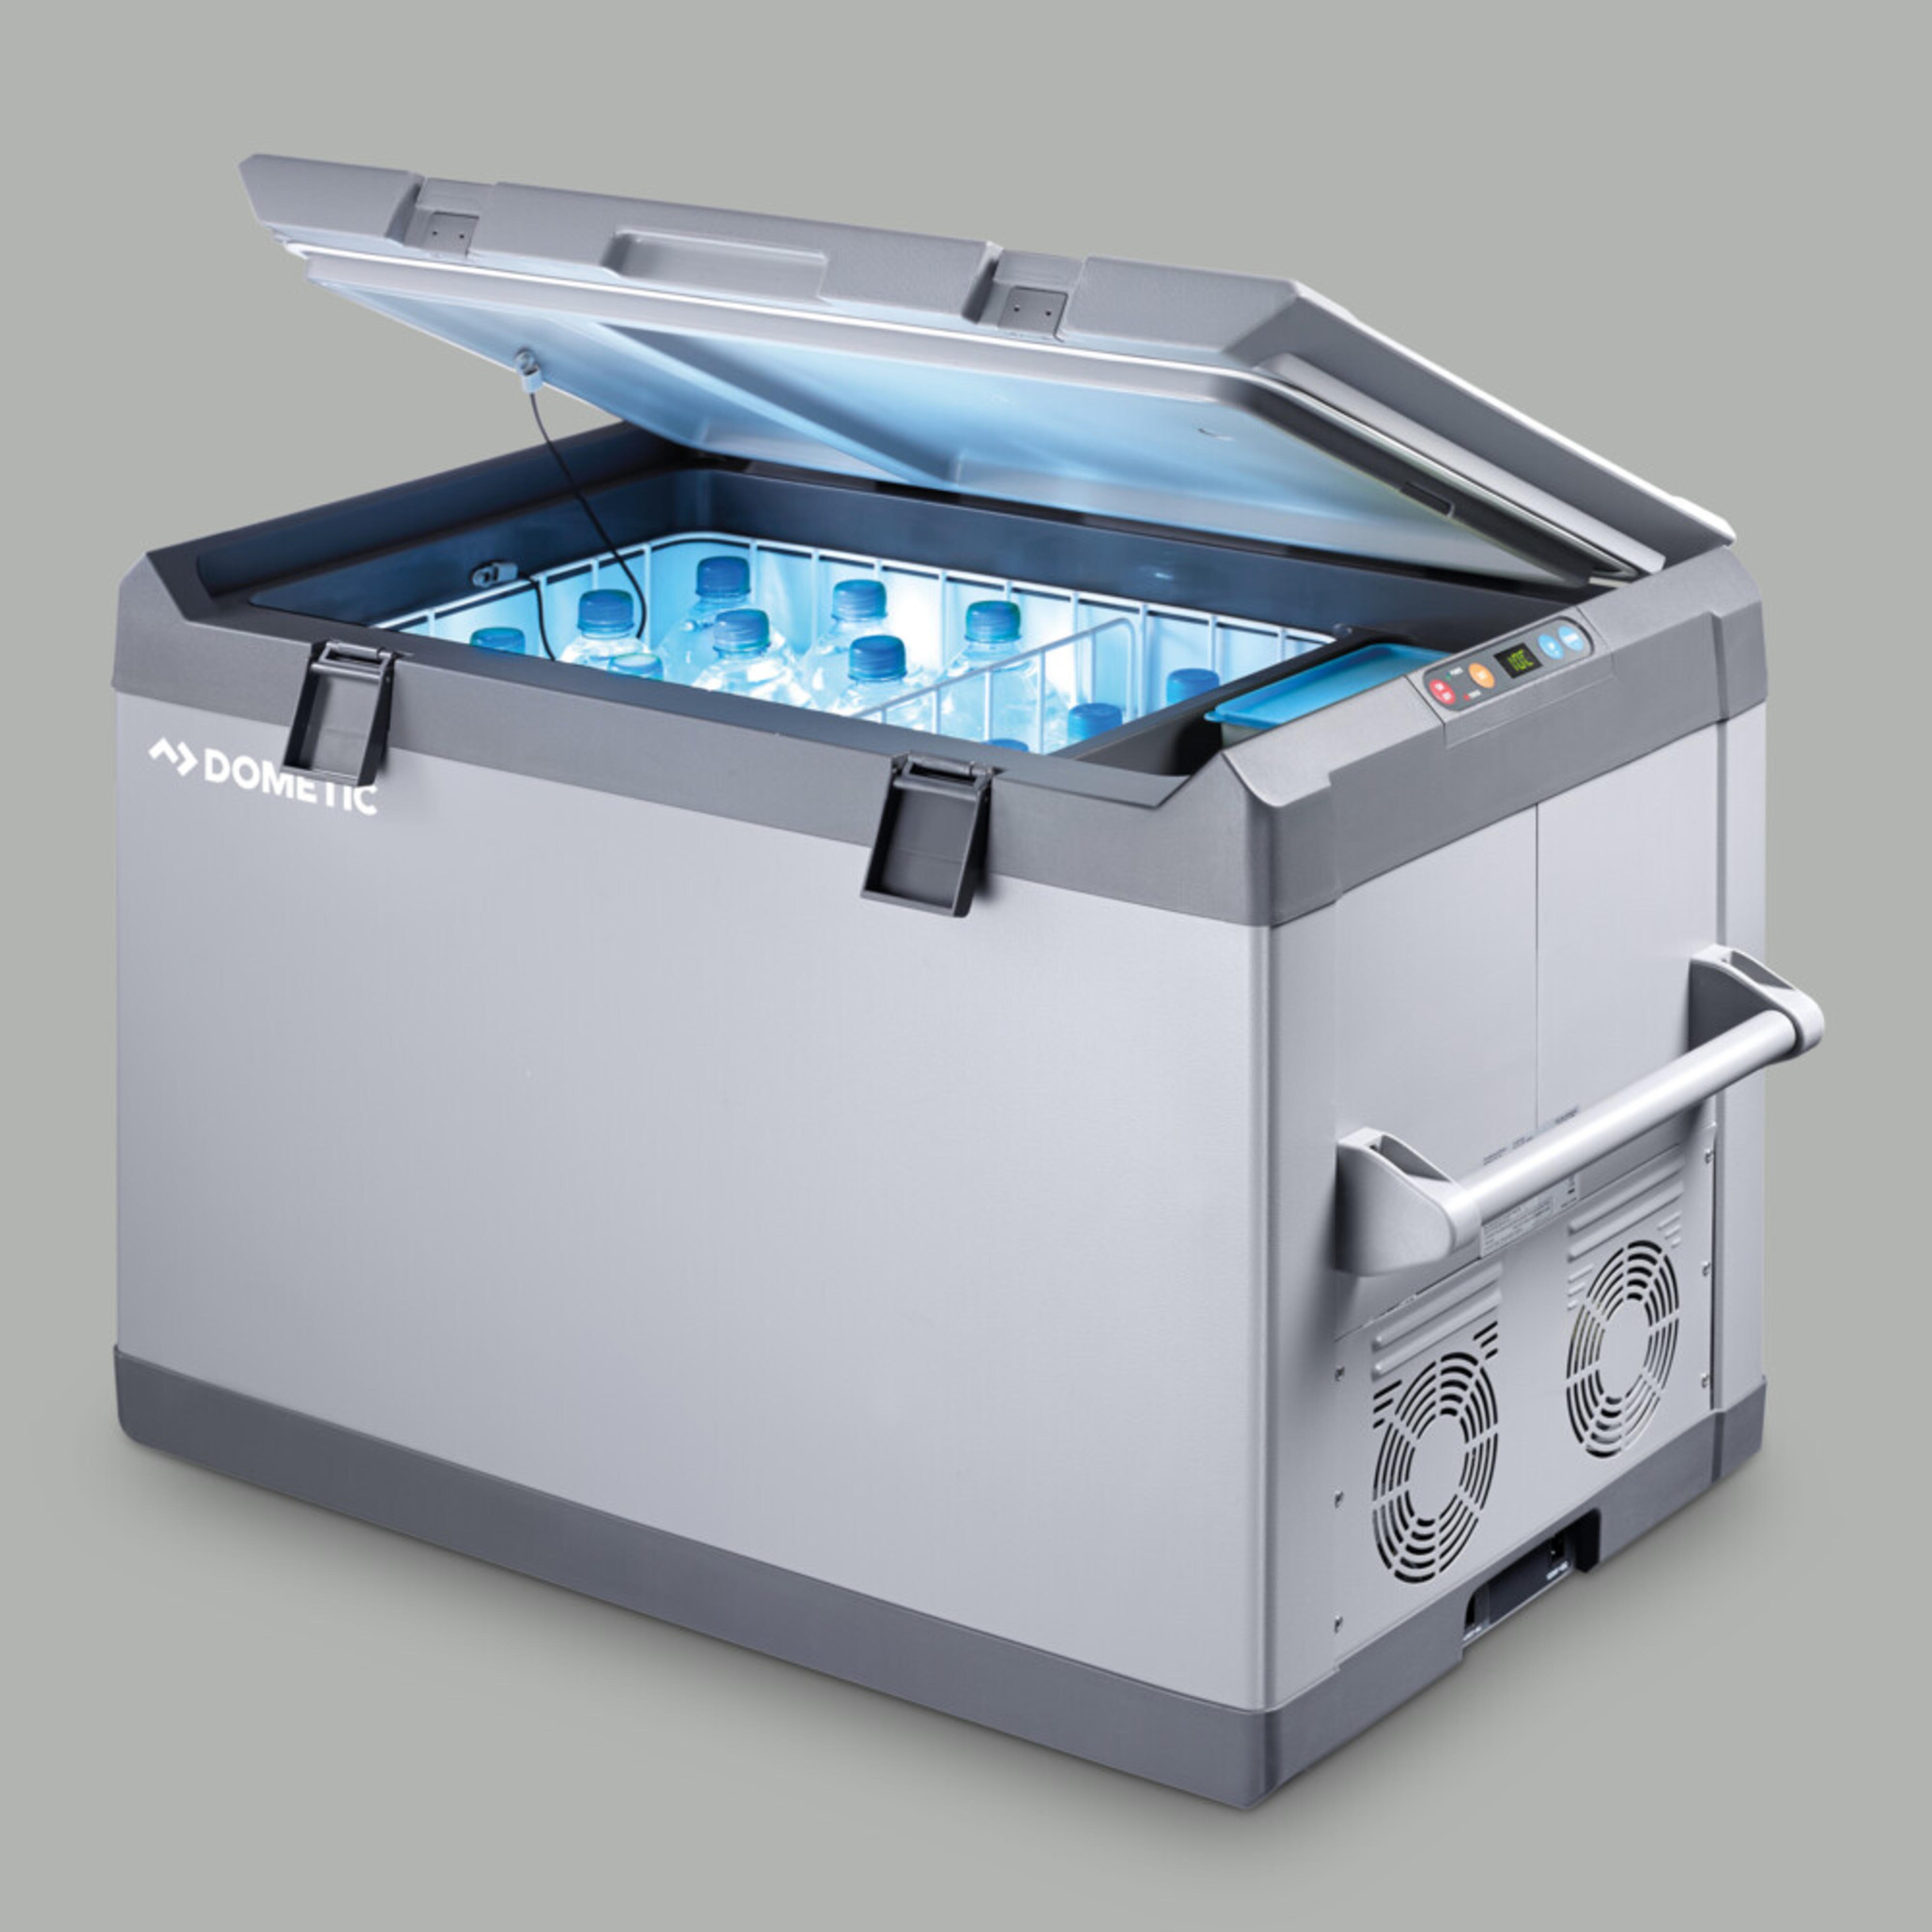 DOMETIC COOLFREEZE CF 110